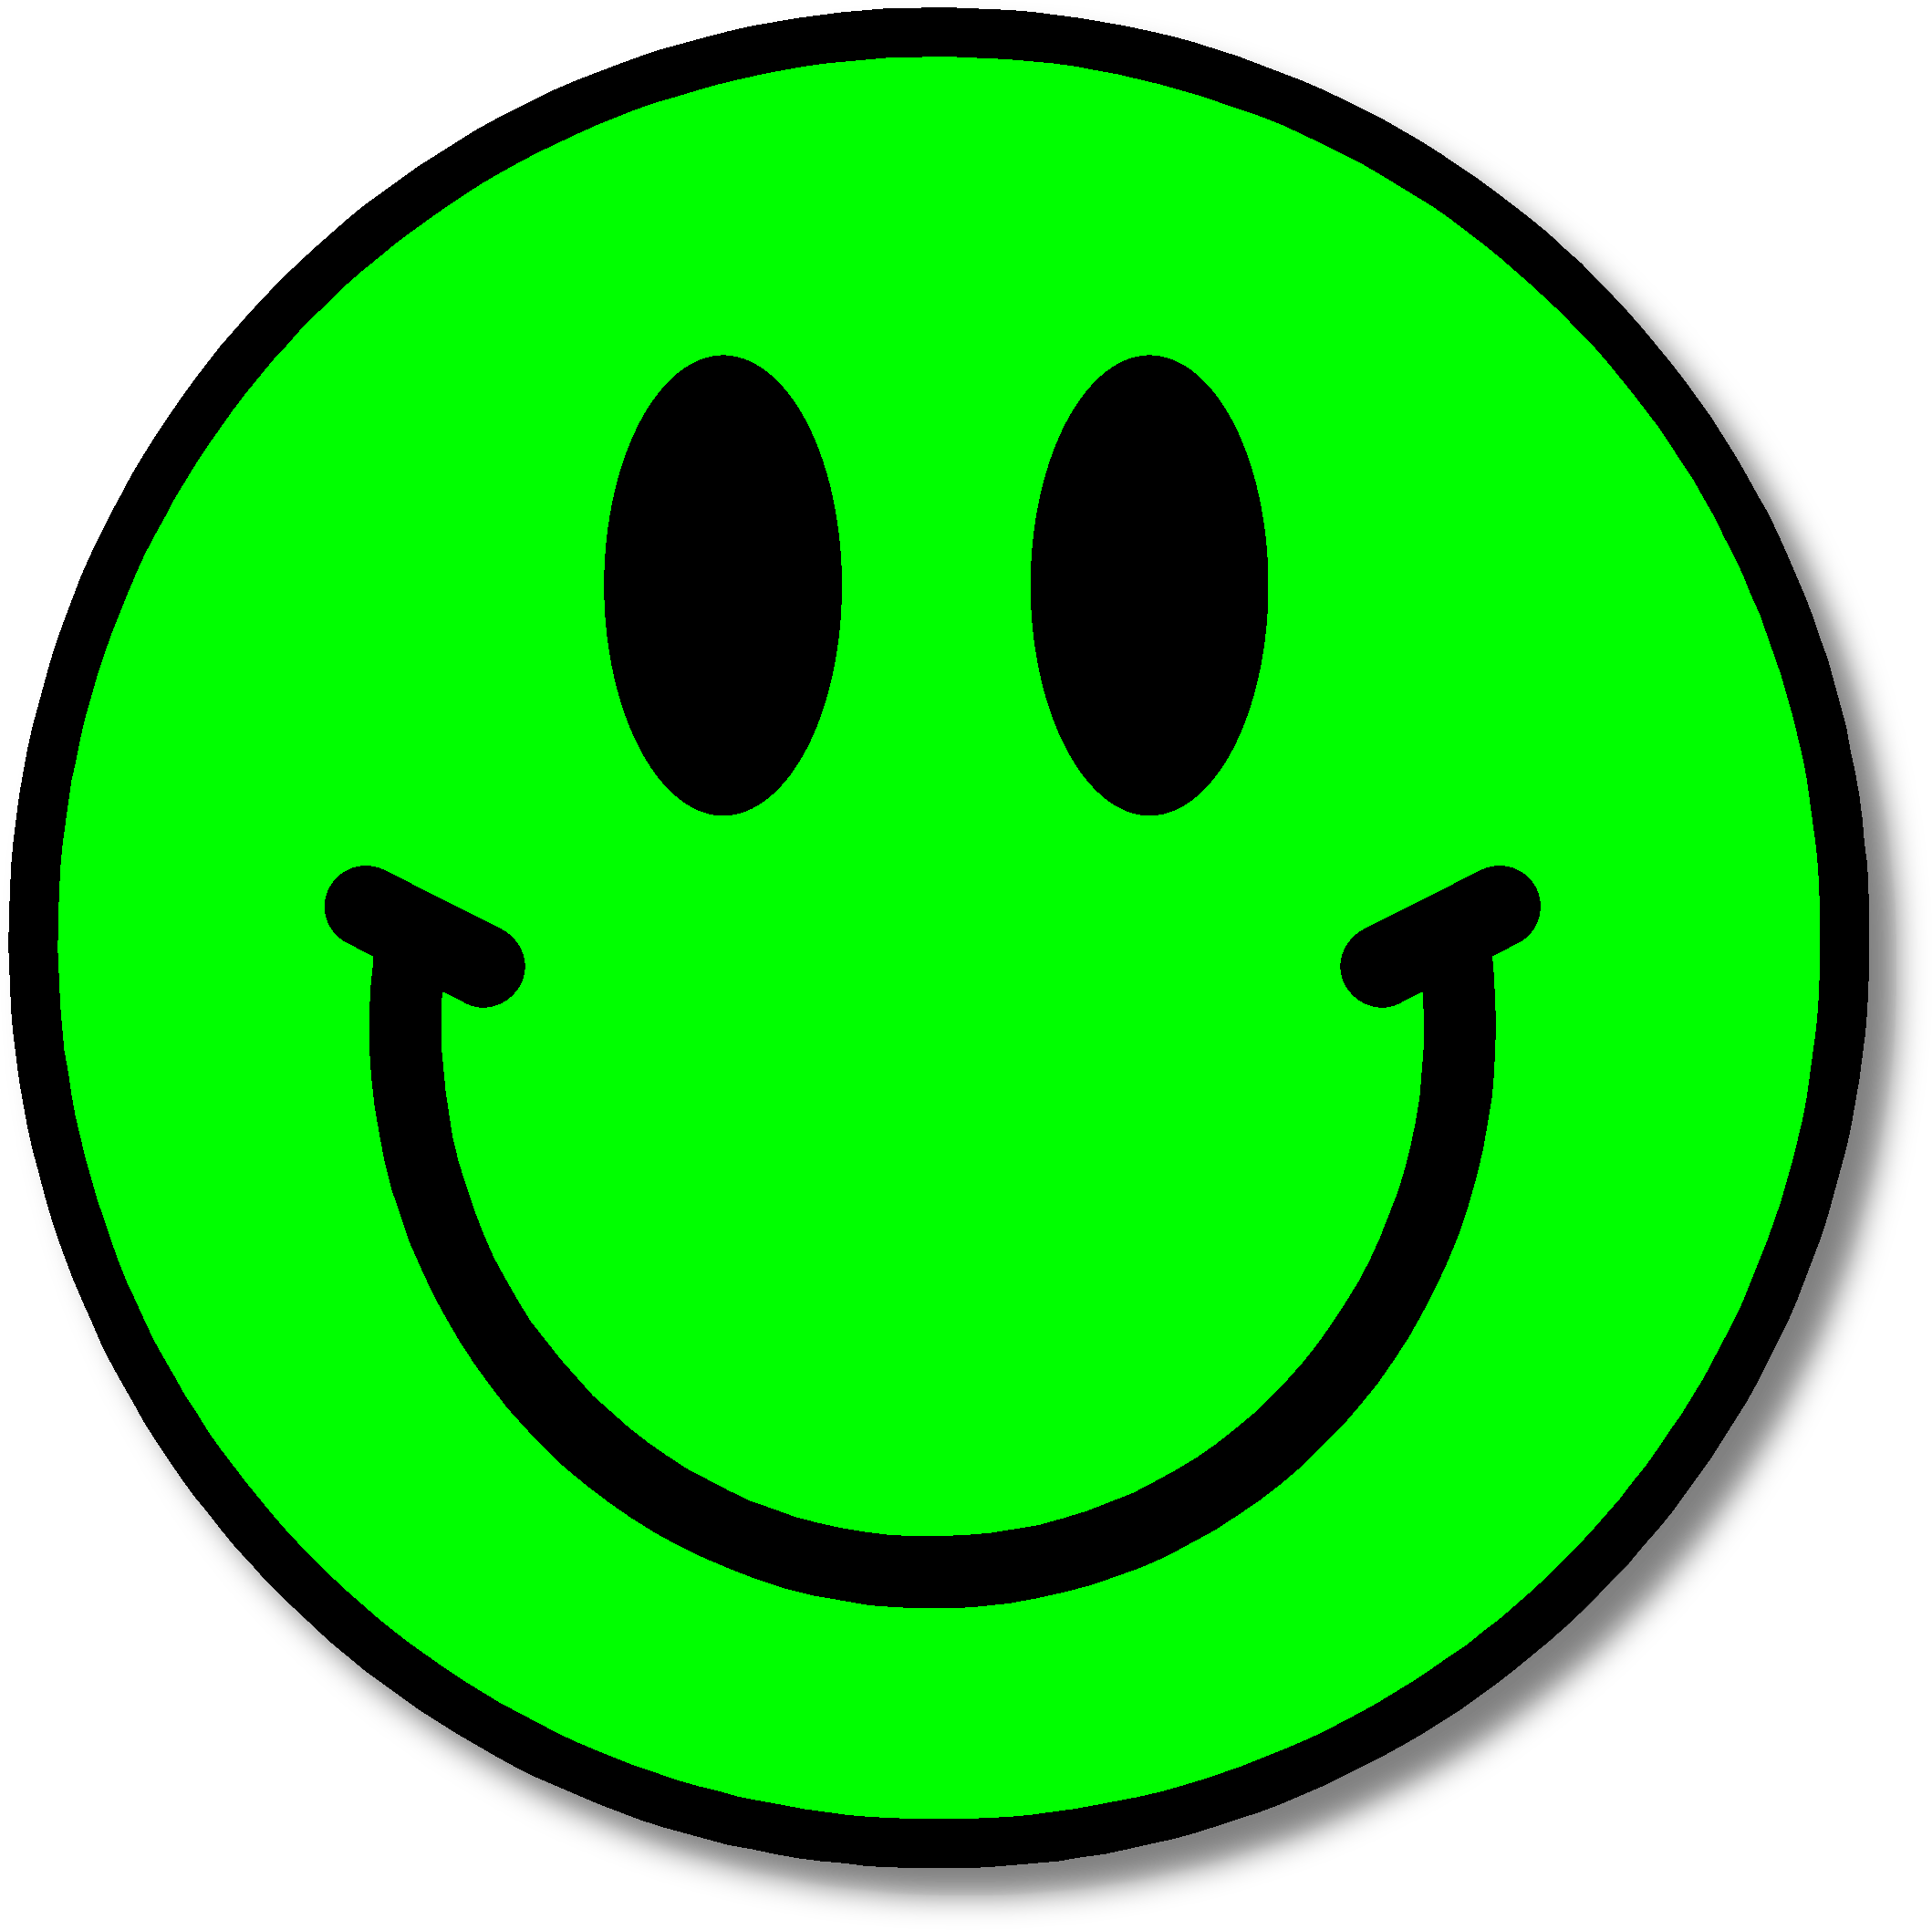 Green smiley face png. This is for the